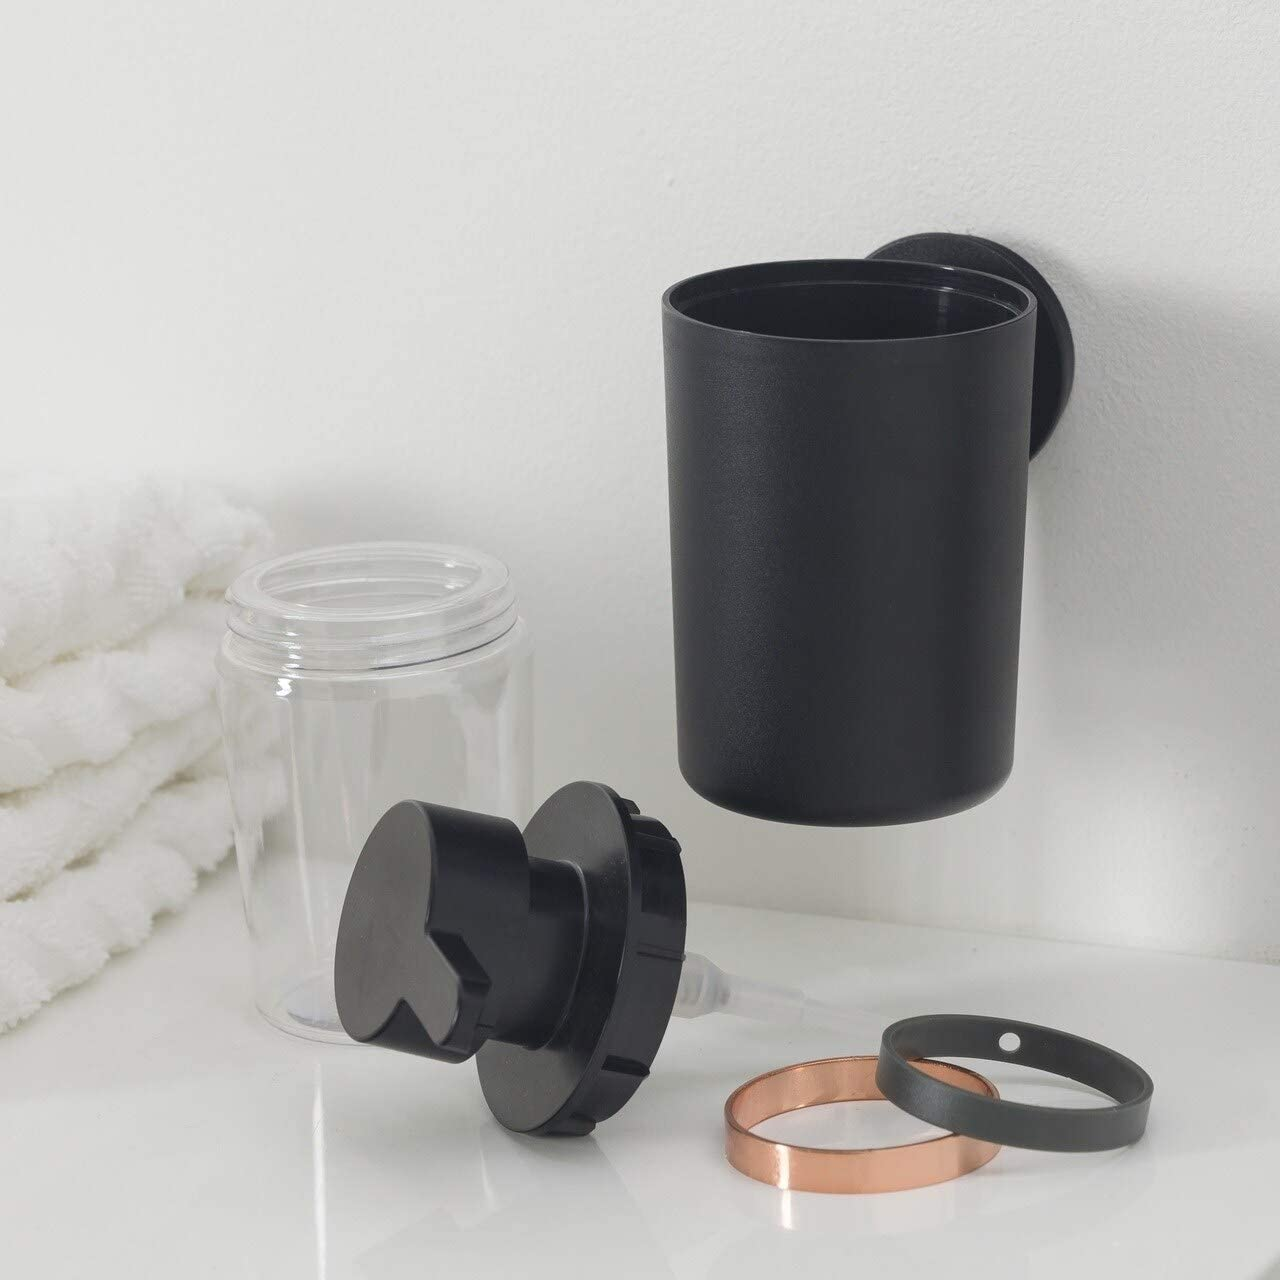 Soap Dispenser Urban Matte Black Copper Solid Color Modern Contemporary Metal Plastic